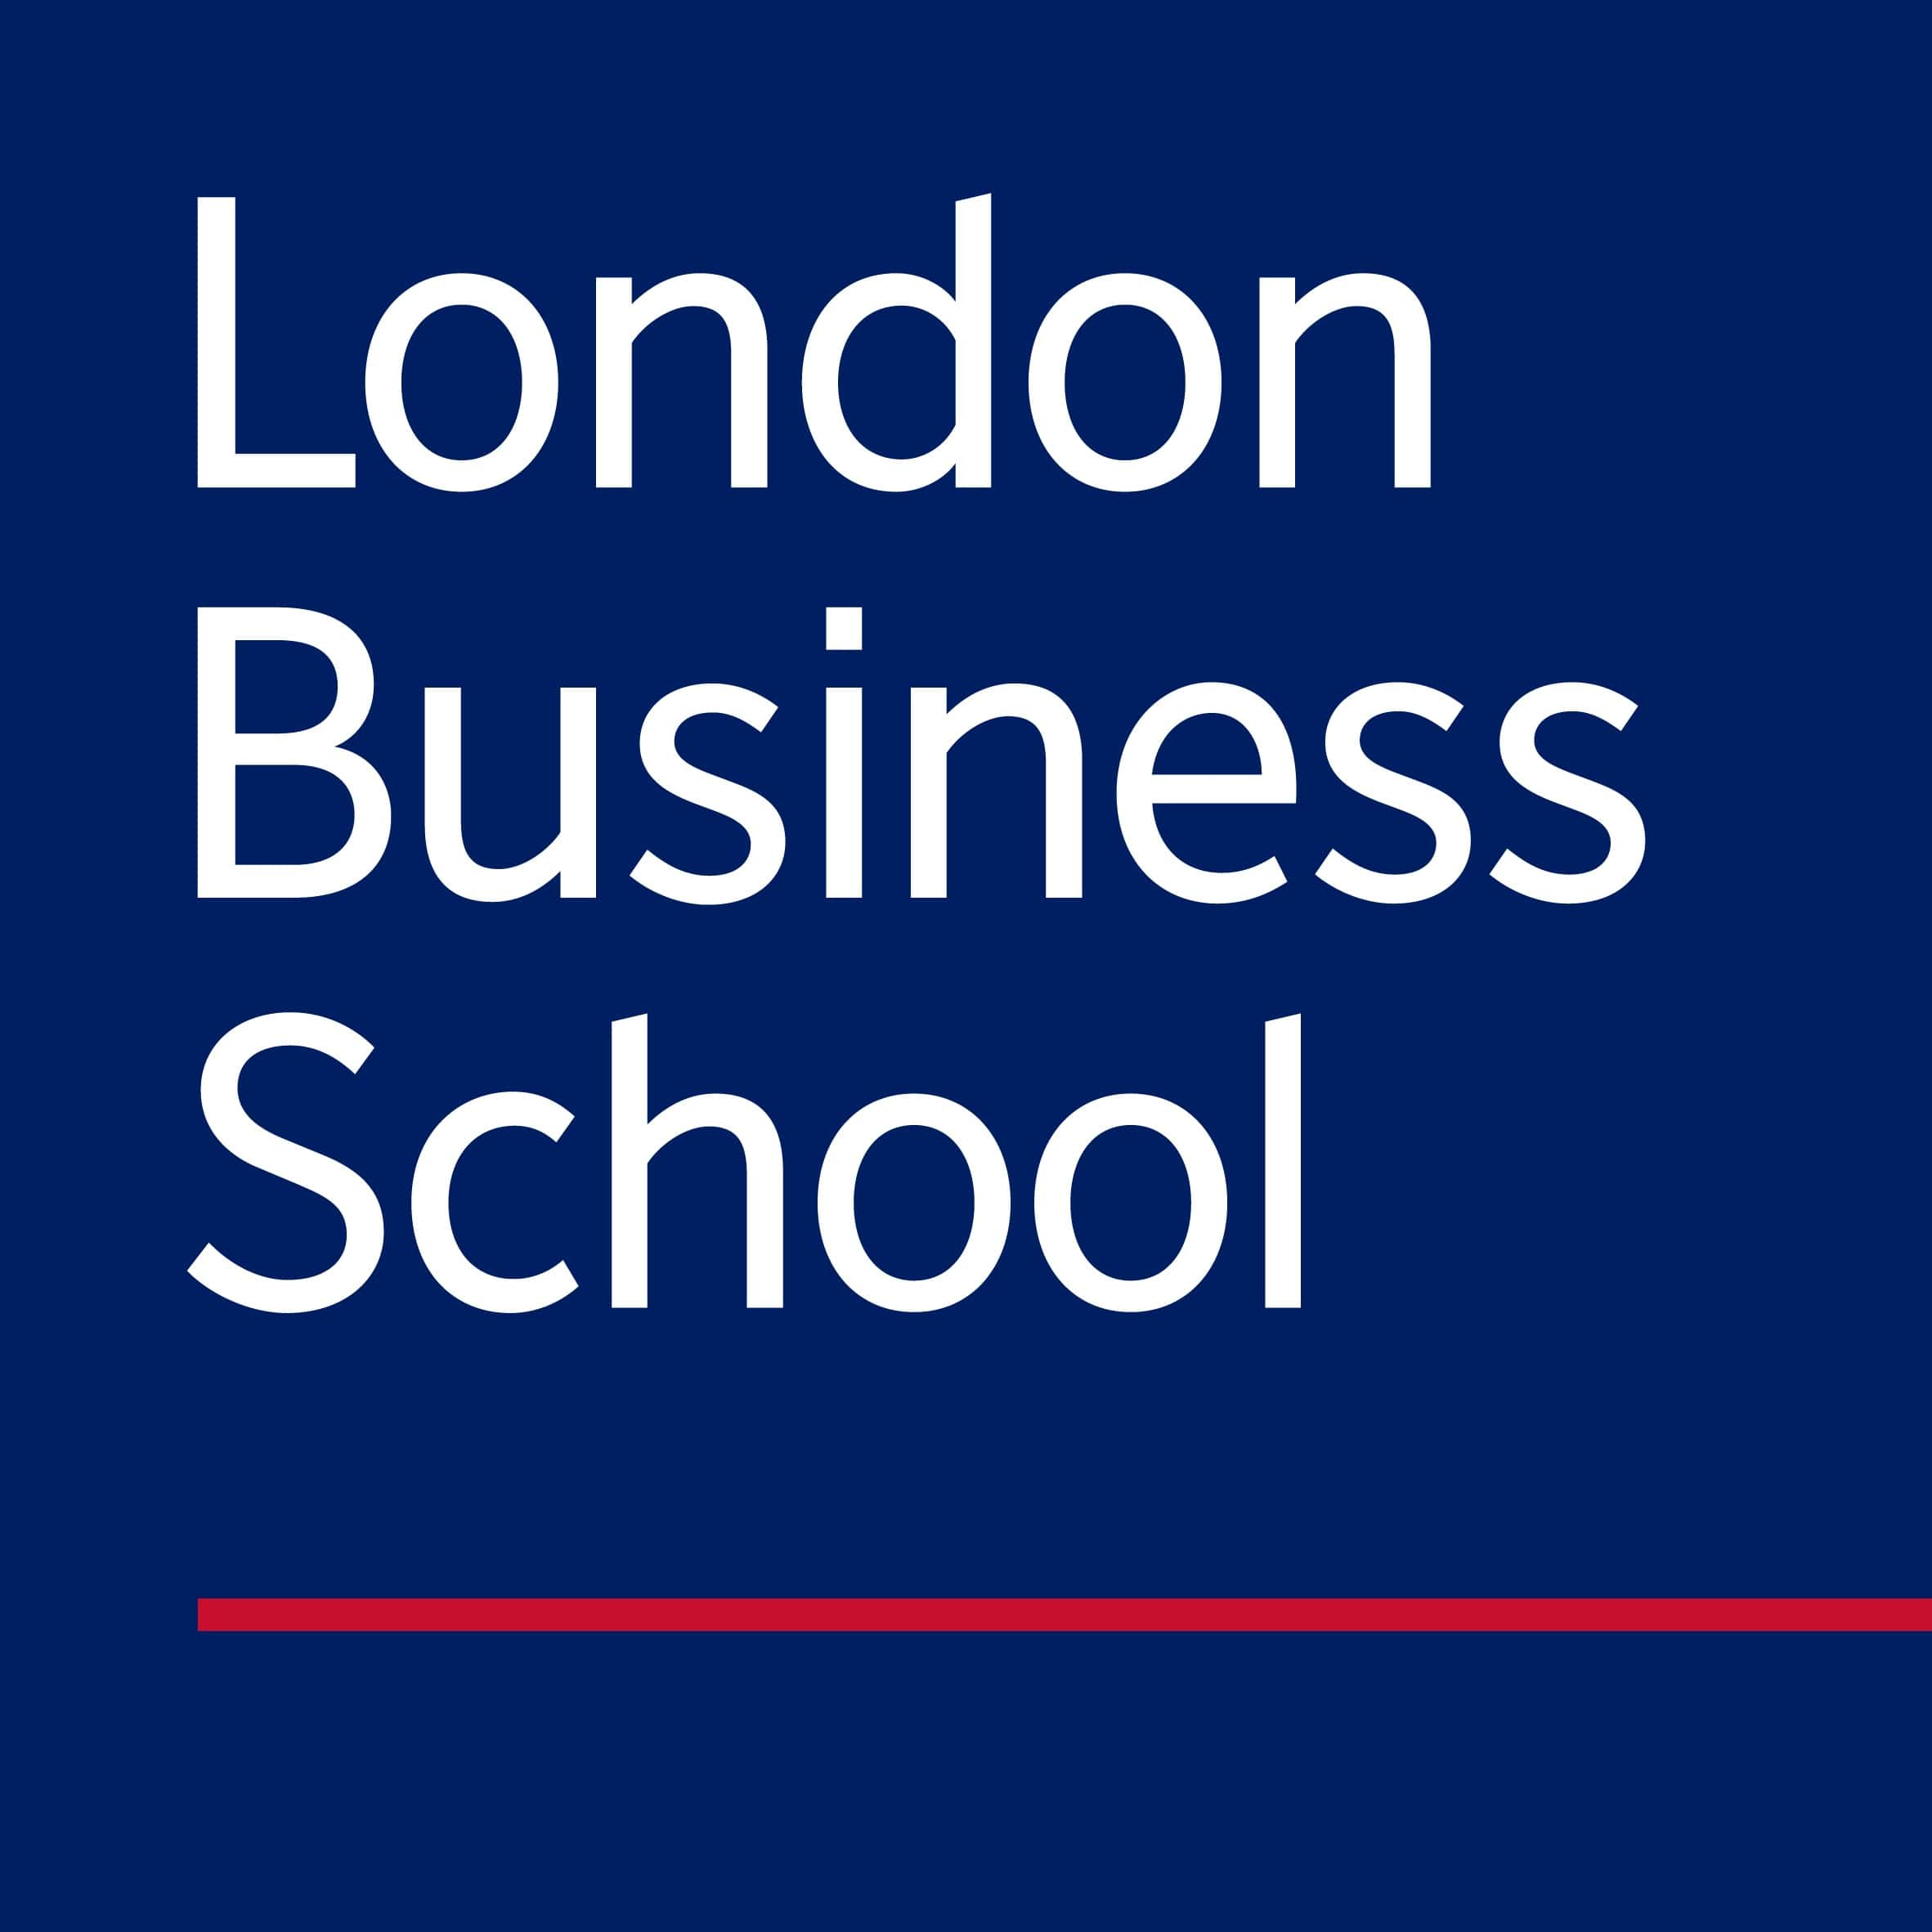 logo of london business school